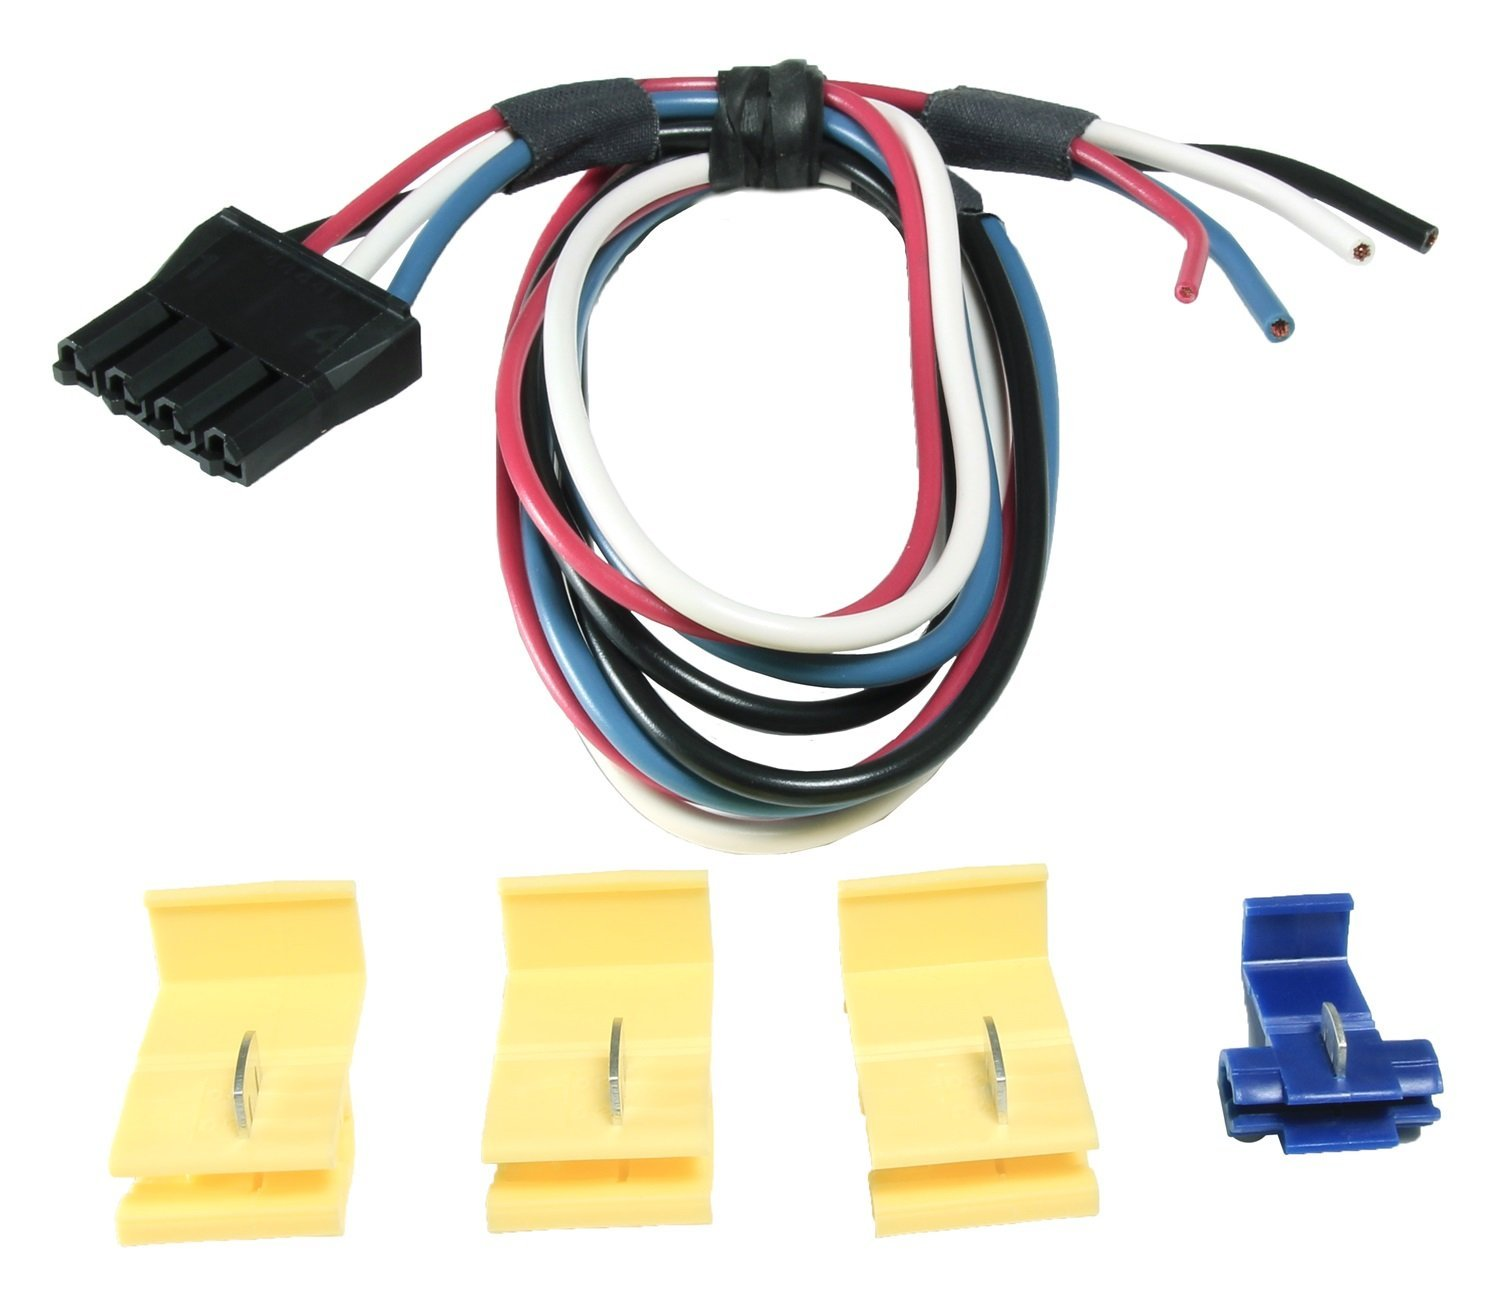 Hopkins 47685 Universal Brake Control Connector Move One Chevrolet Trailer Wiring Harness Between Multiple Vehicles By Towing Solutions